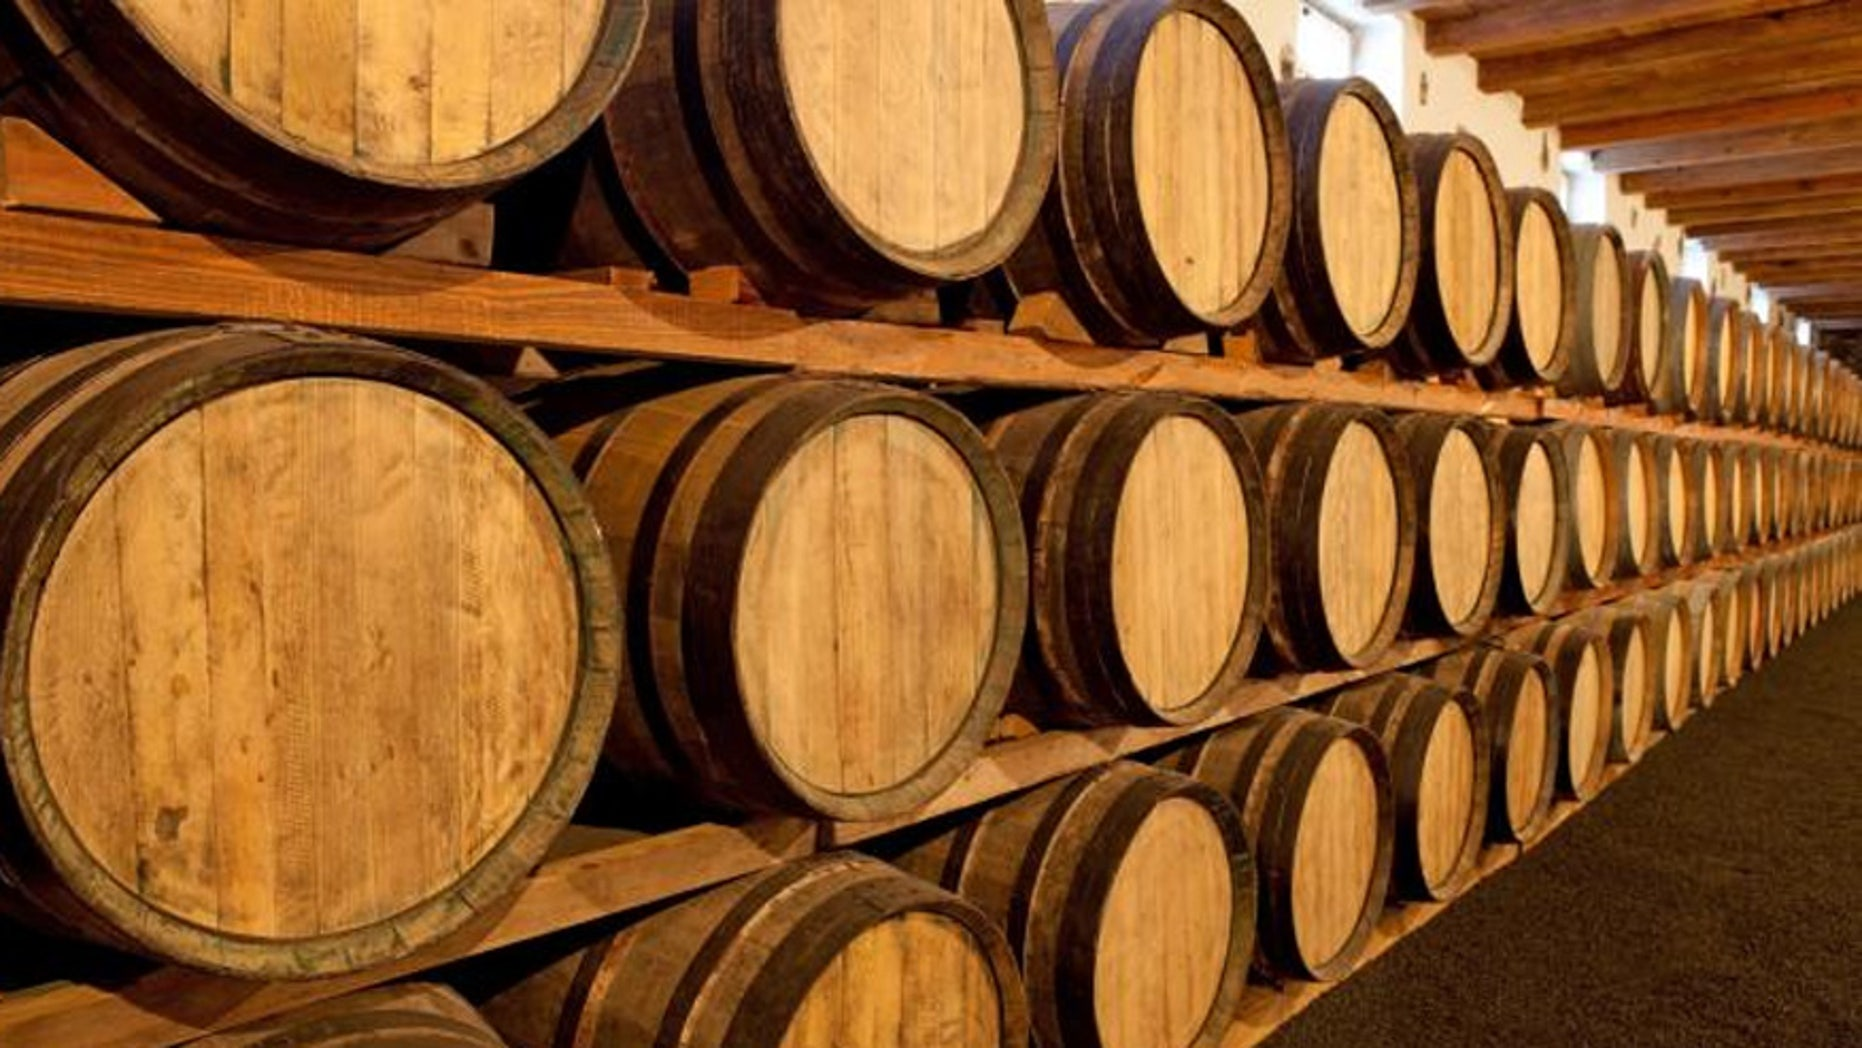 Winemakers have been using oak barrels for centuries.  So what do they do anyway?